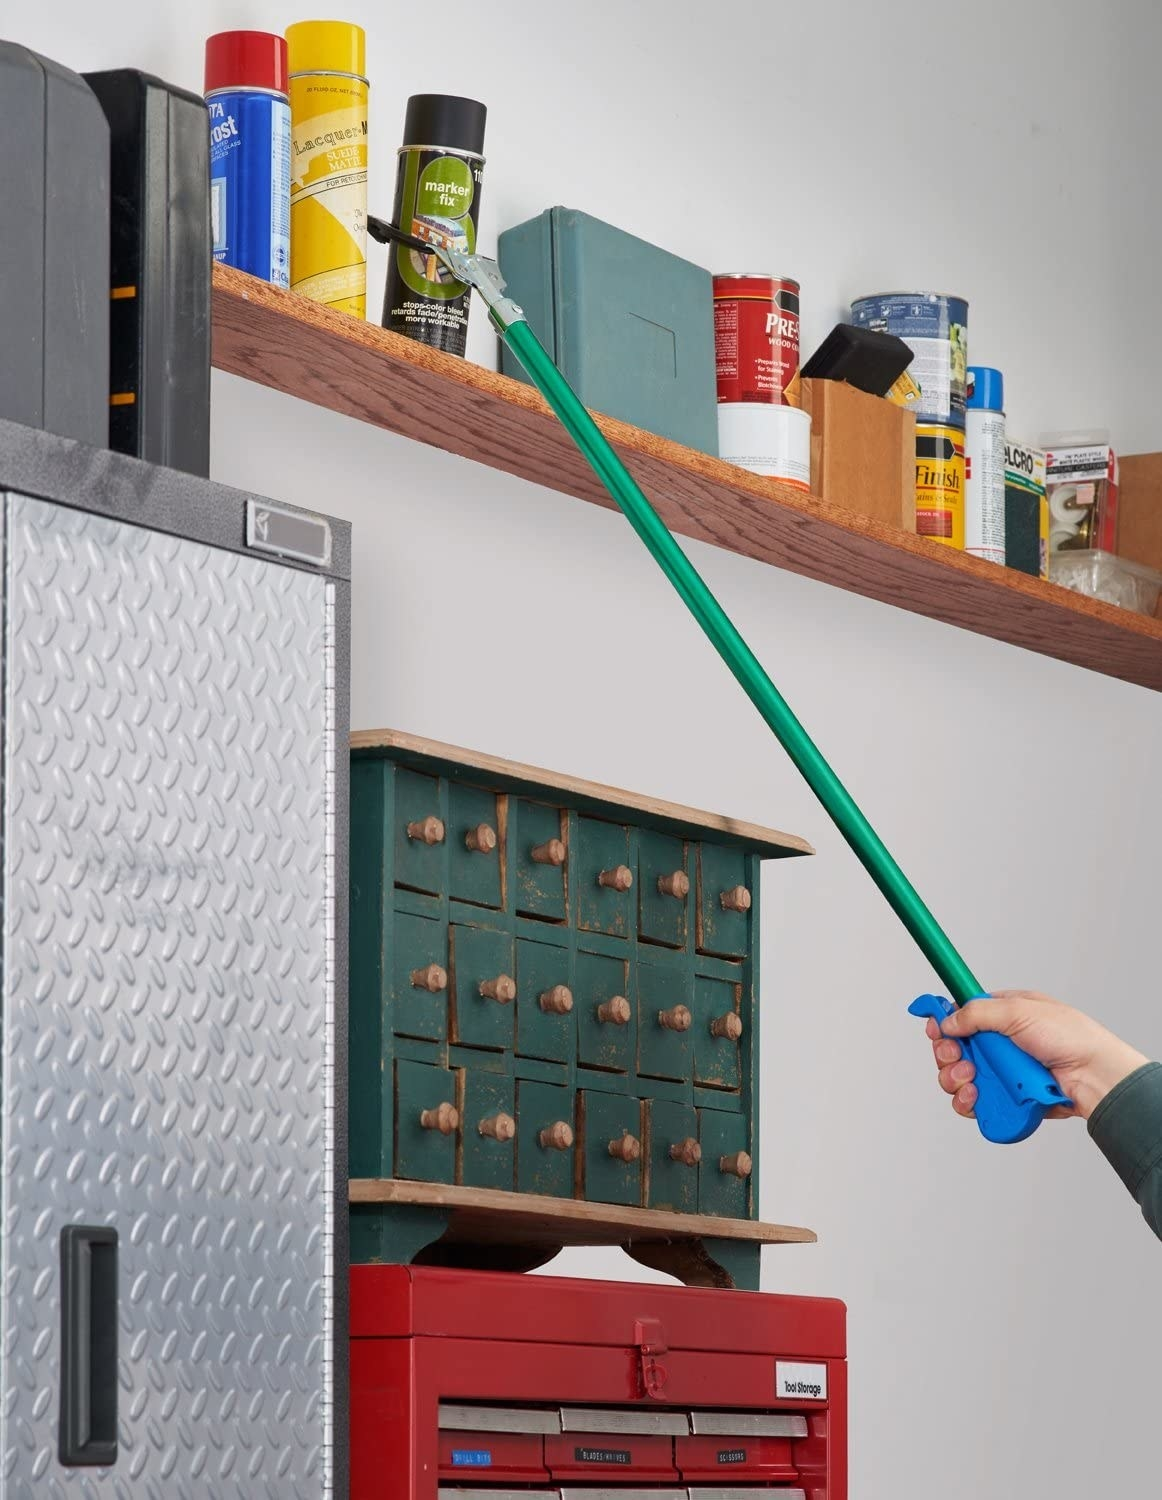 A person uses a reaching tool to grab something from a high shelf